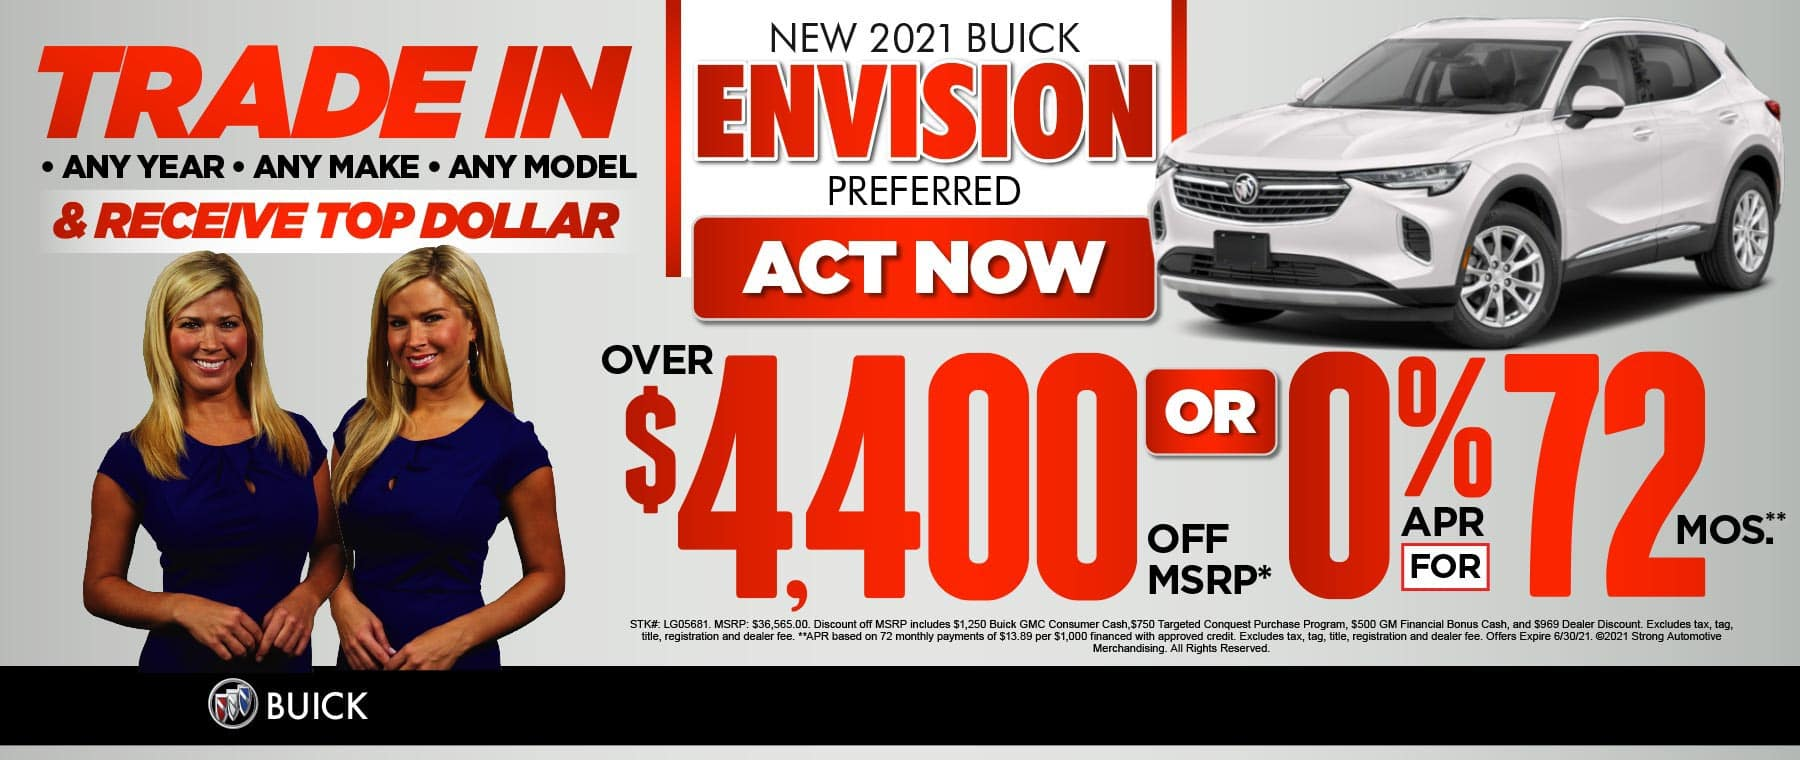 2021 Buick Envision Preferred Over $4,400 off MRSP* OR 0% for 72 months** ACT NOW